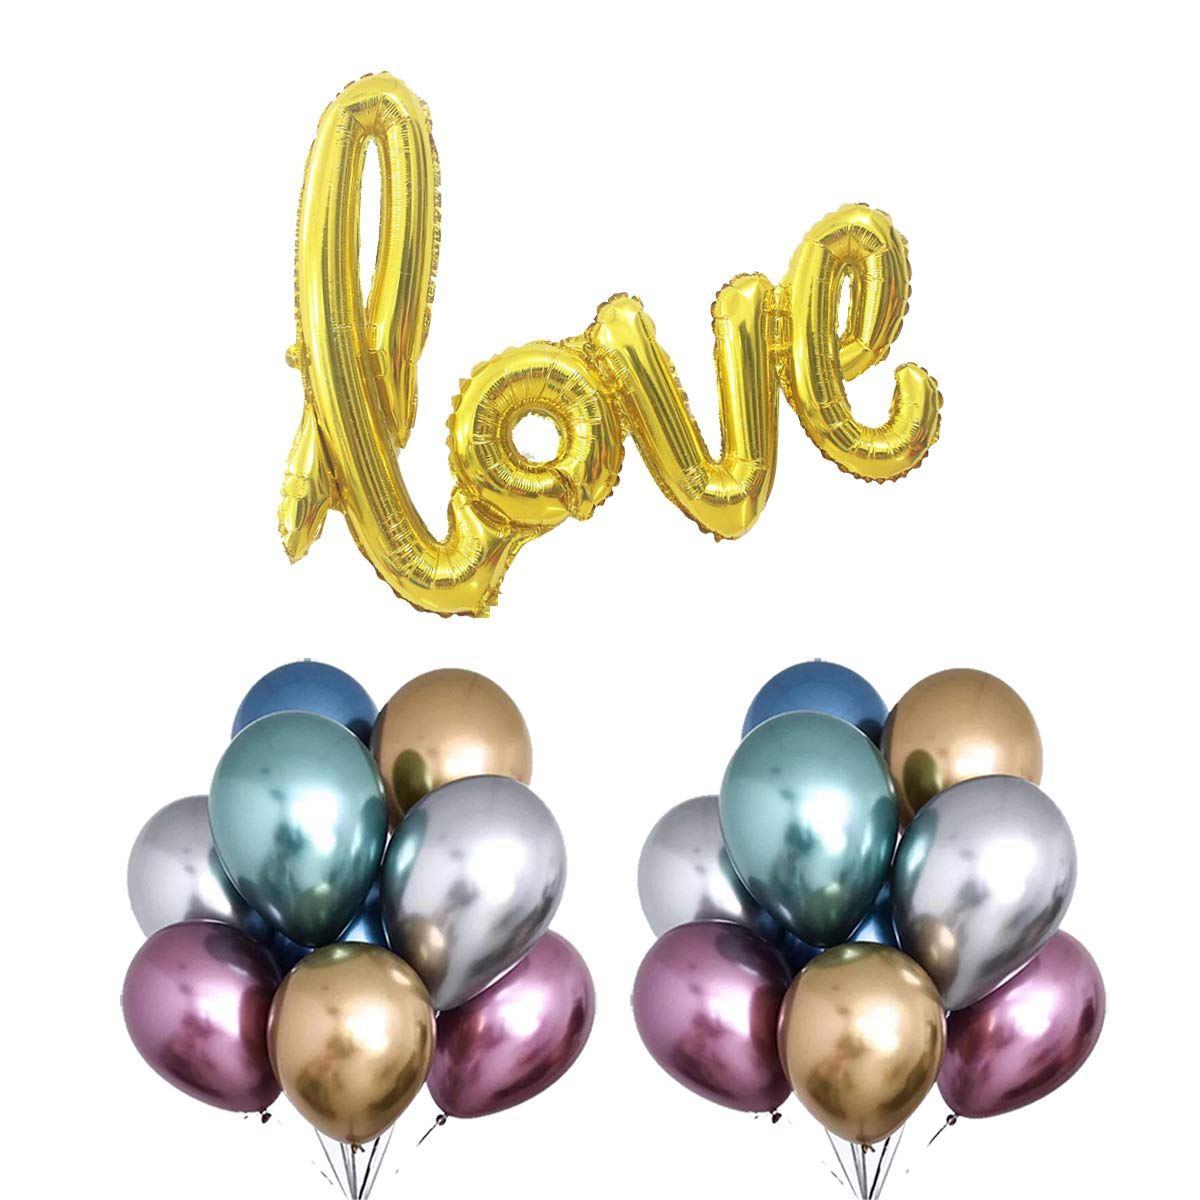 7 Colours Metallic and Large Love Foil Balloons for Confession Bachelorette Window Design Birthday Wedding Party Decoration (Golden Rainbow)